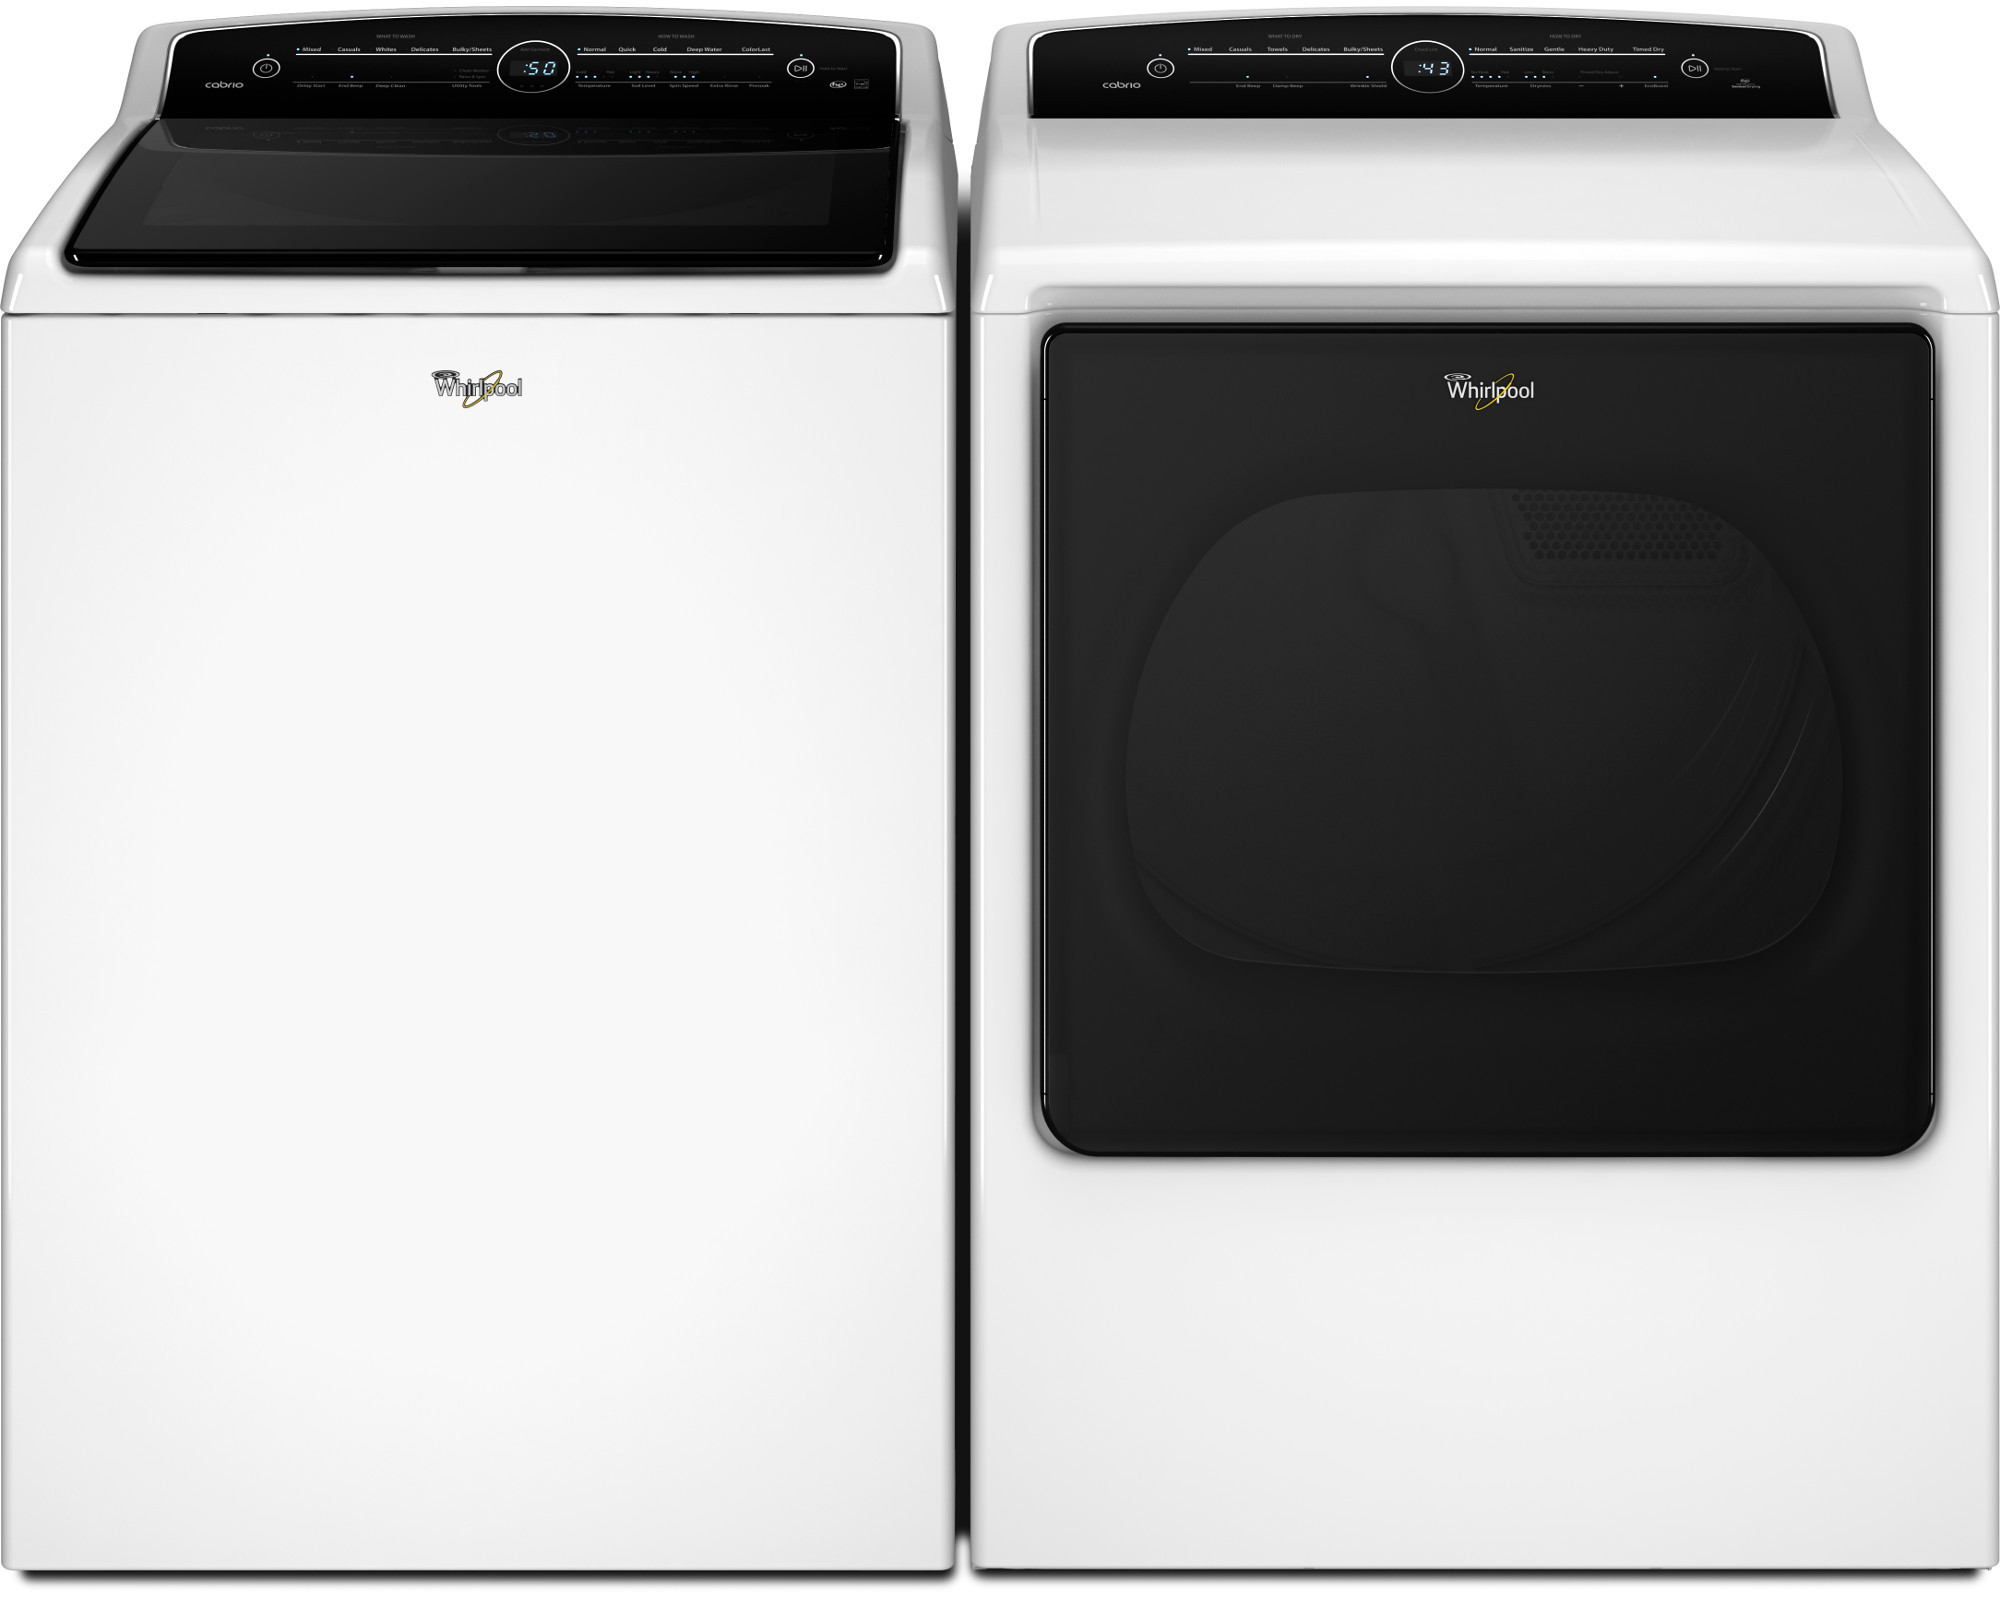 Whirlpool WED8000DW 8.8 cu. ft. Cabrio® Electric Dryer - White